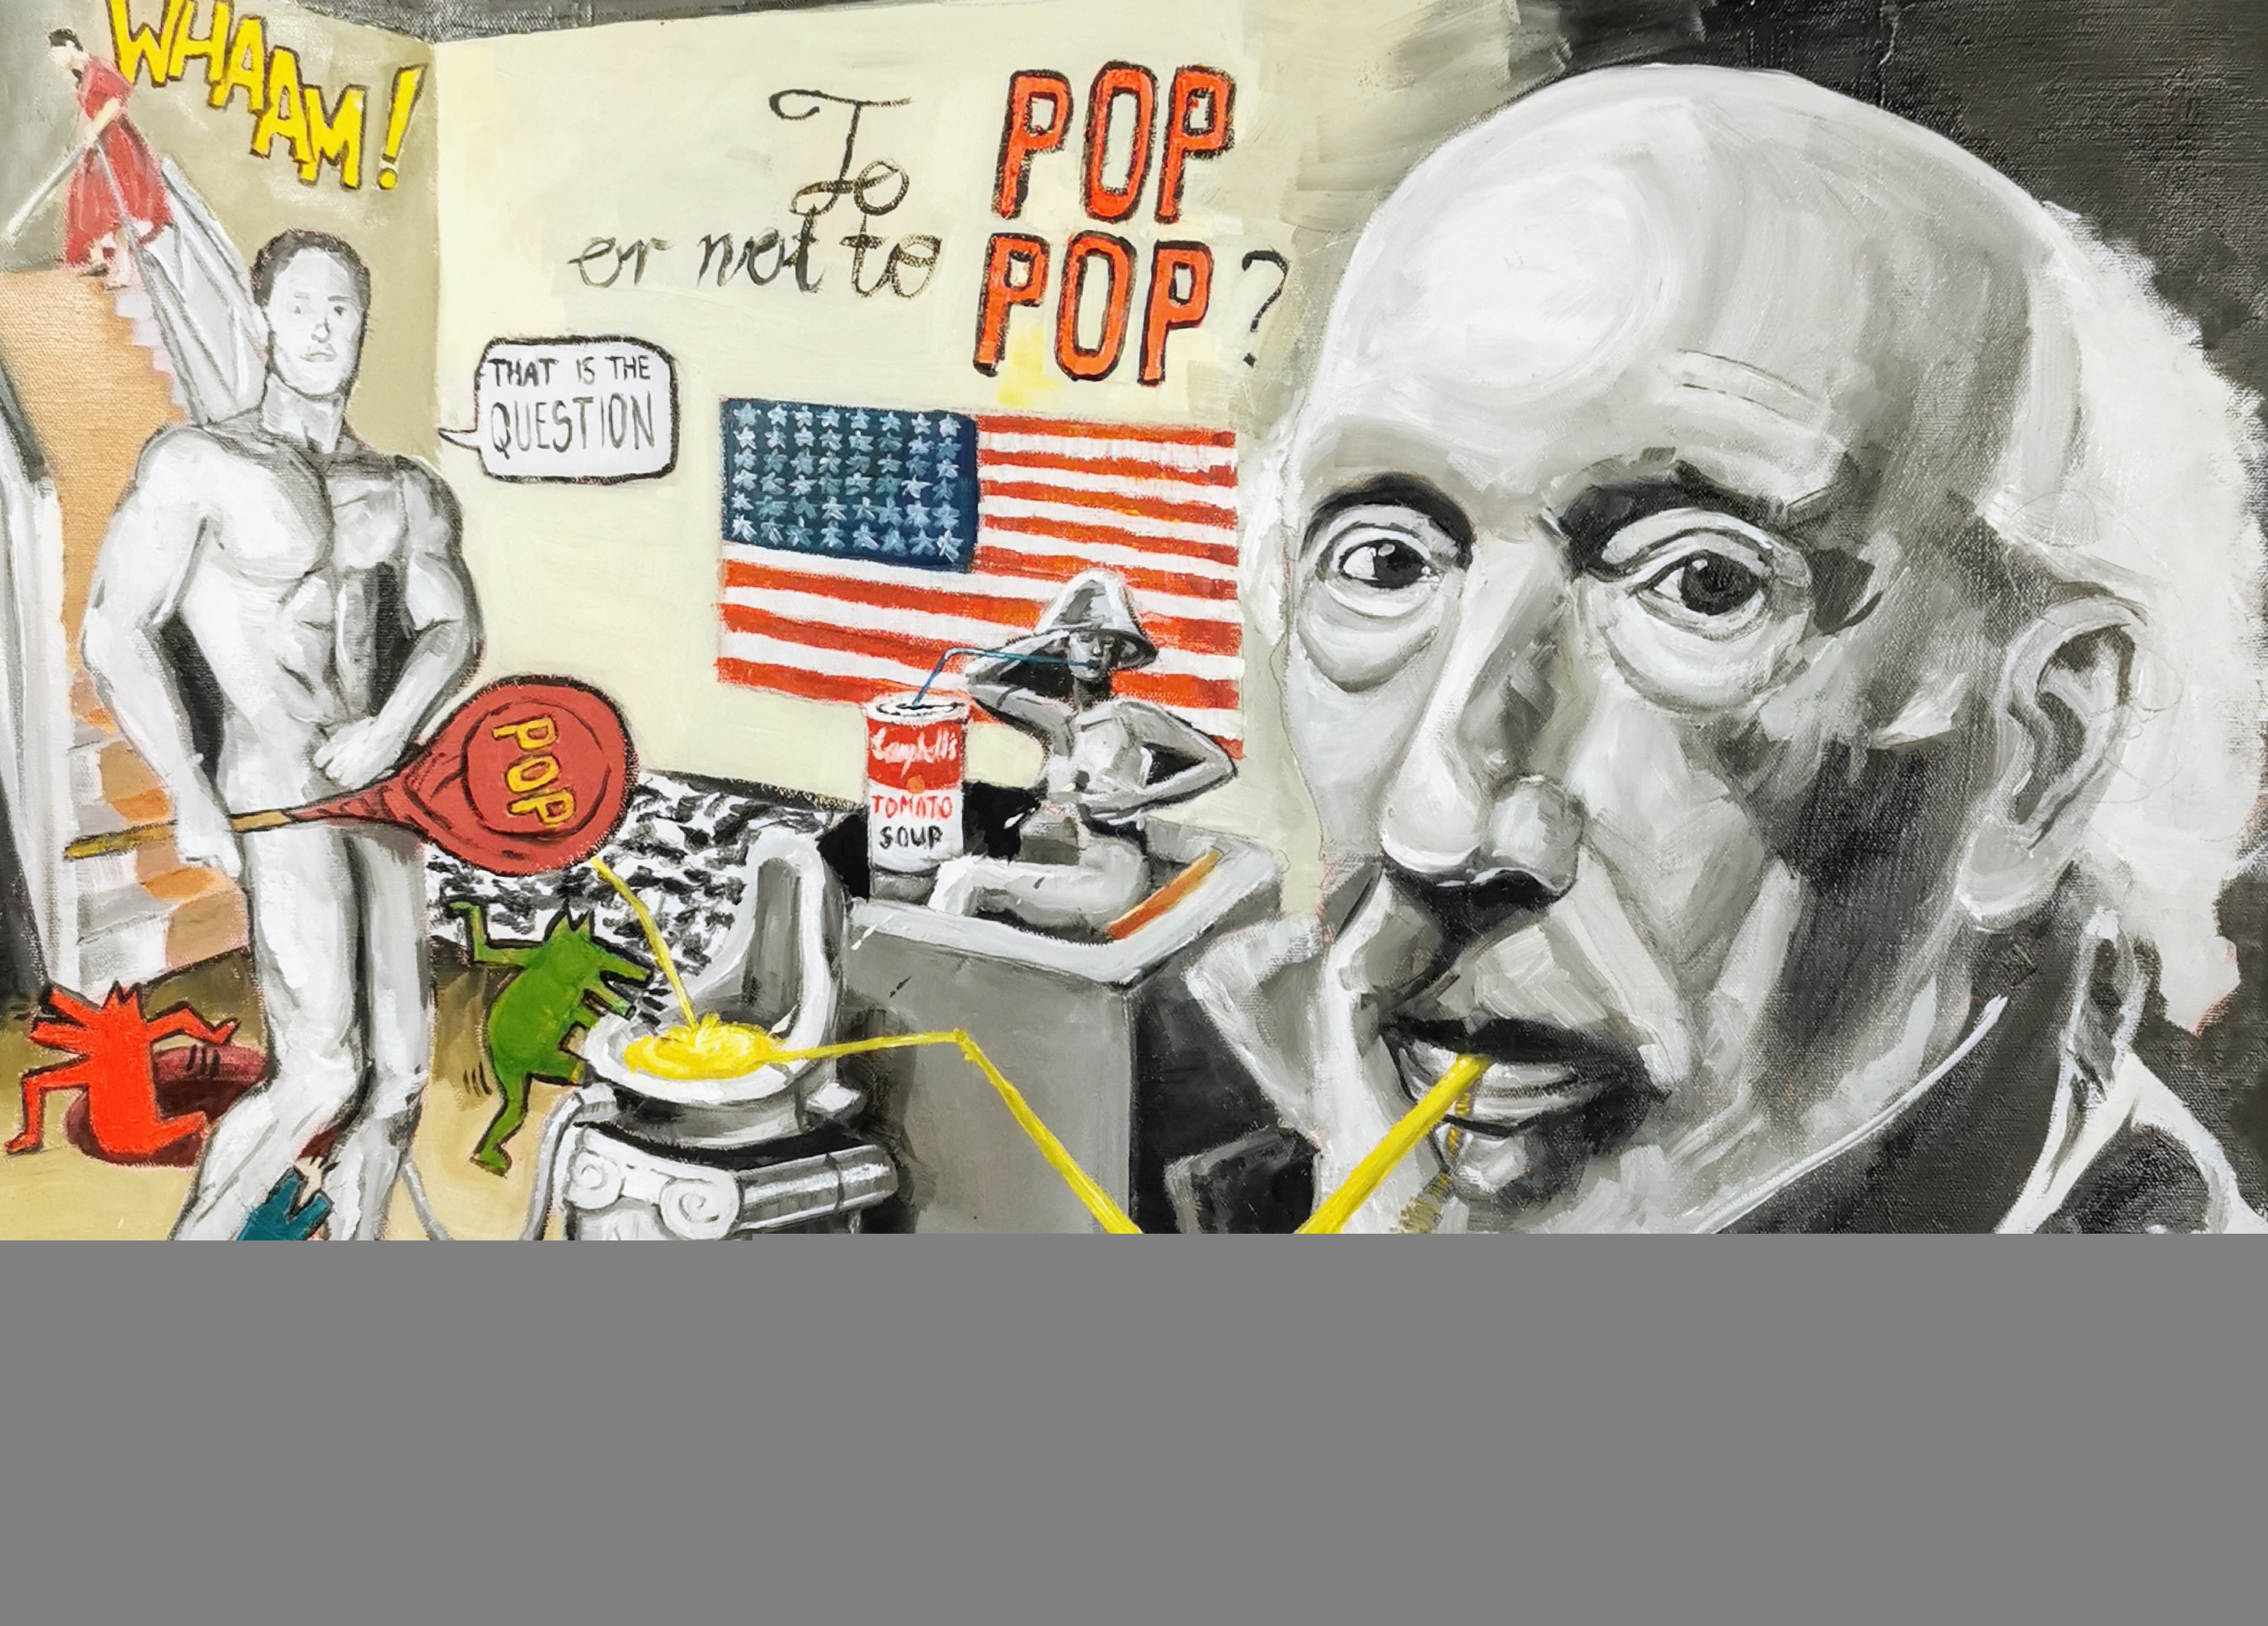 New Situation...TO POP or not to POP, Tribute to Richard Hamilton, 2015